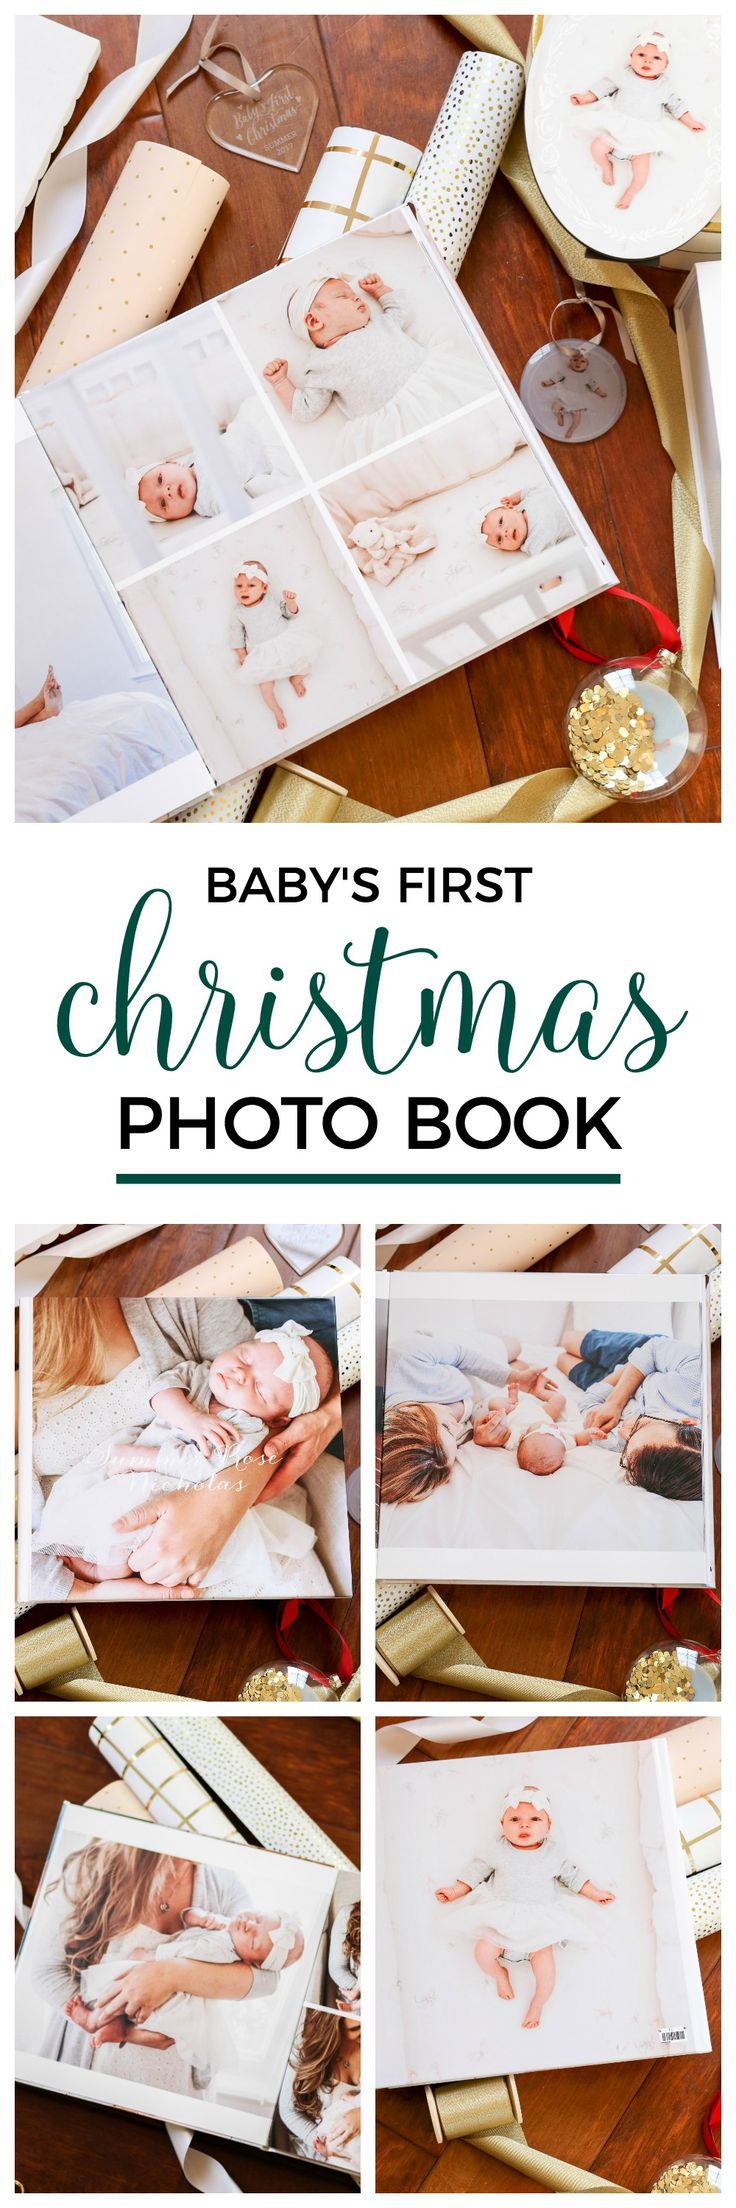 How to create a custom photo book for baby's first Christmas! Click through to see the best personalized Christmas gift ideas for everyone on your list with Shutterfly and Orlando, Florida lifestyle blogger Ashley Brooke Nicholas! #shutterfly sponsored by Shutterfly | Christmas gift ideas, personalized gift ideas, monograms, monogrammed, monogrammed gifts, photo books, baby's first christmas, Santa sack, flocked Christmas tree, Christmas gift ideas, unique gift ideas, newborn photos